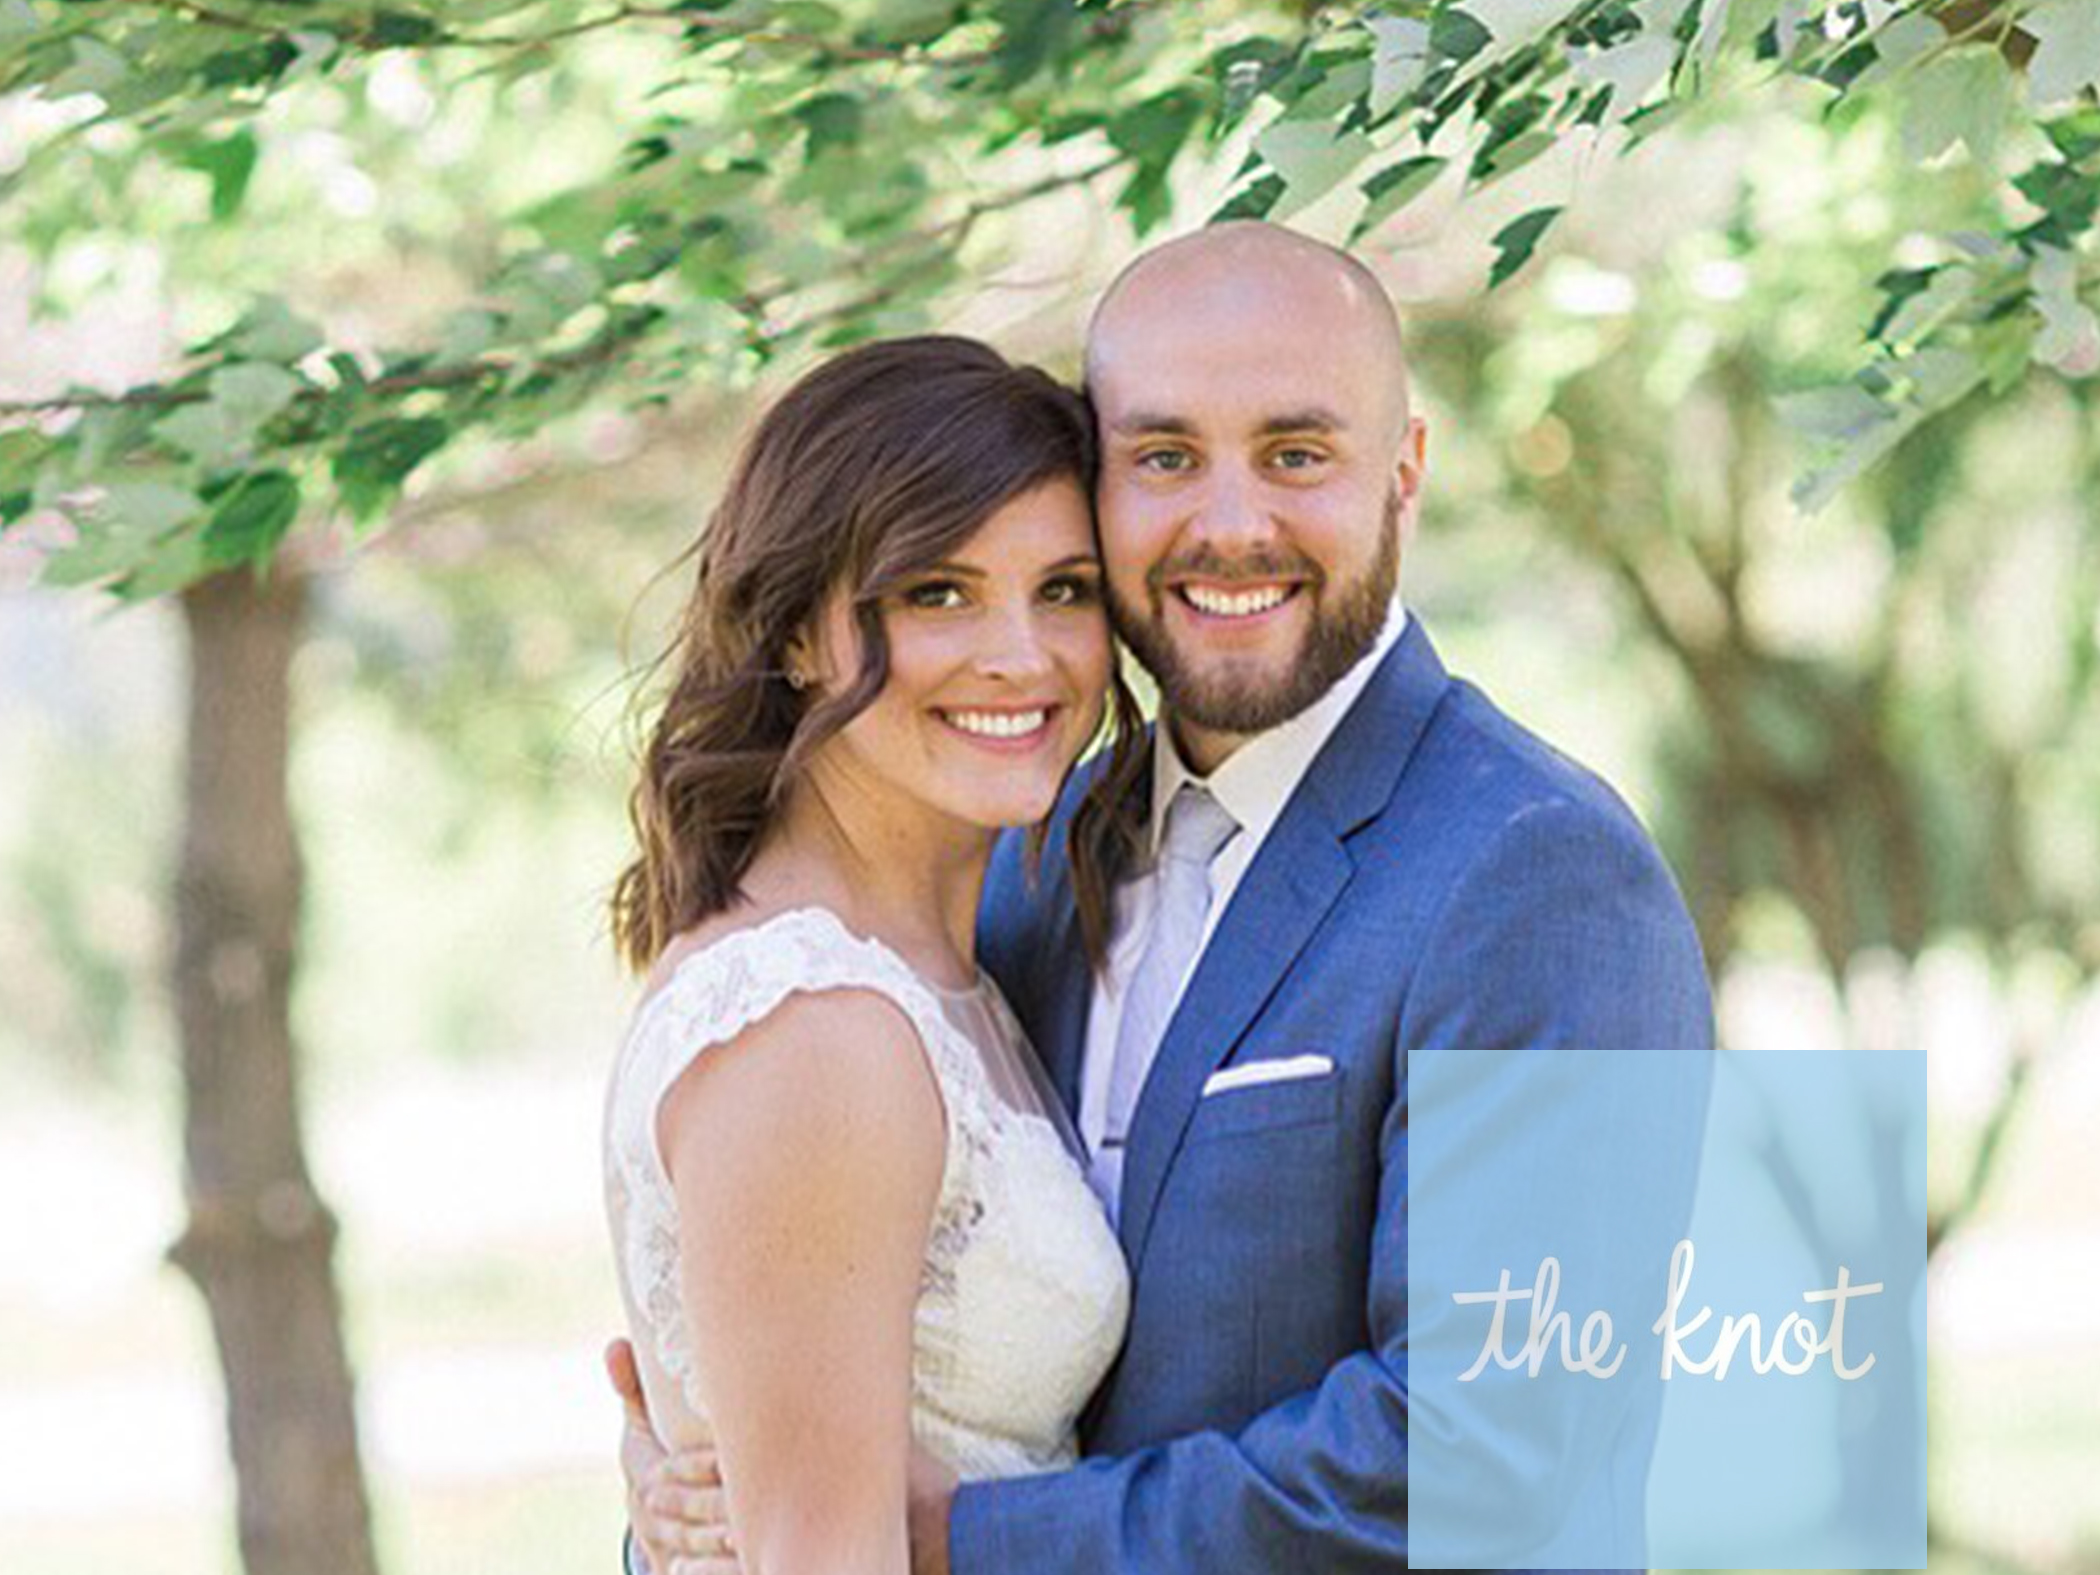 THE KNOT:  LAUREN & DAN